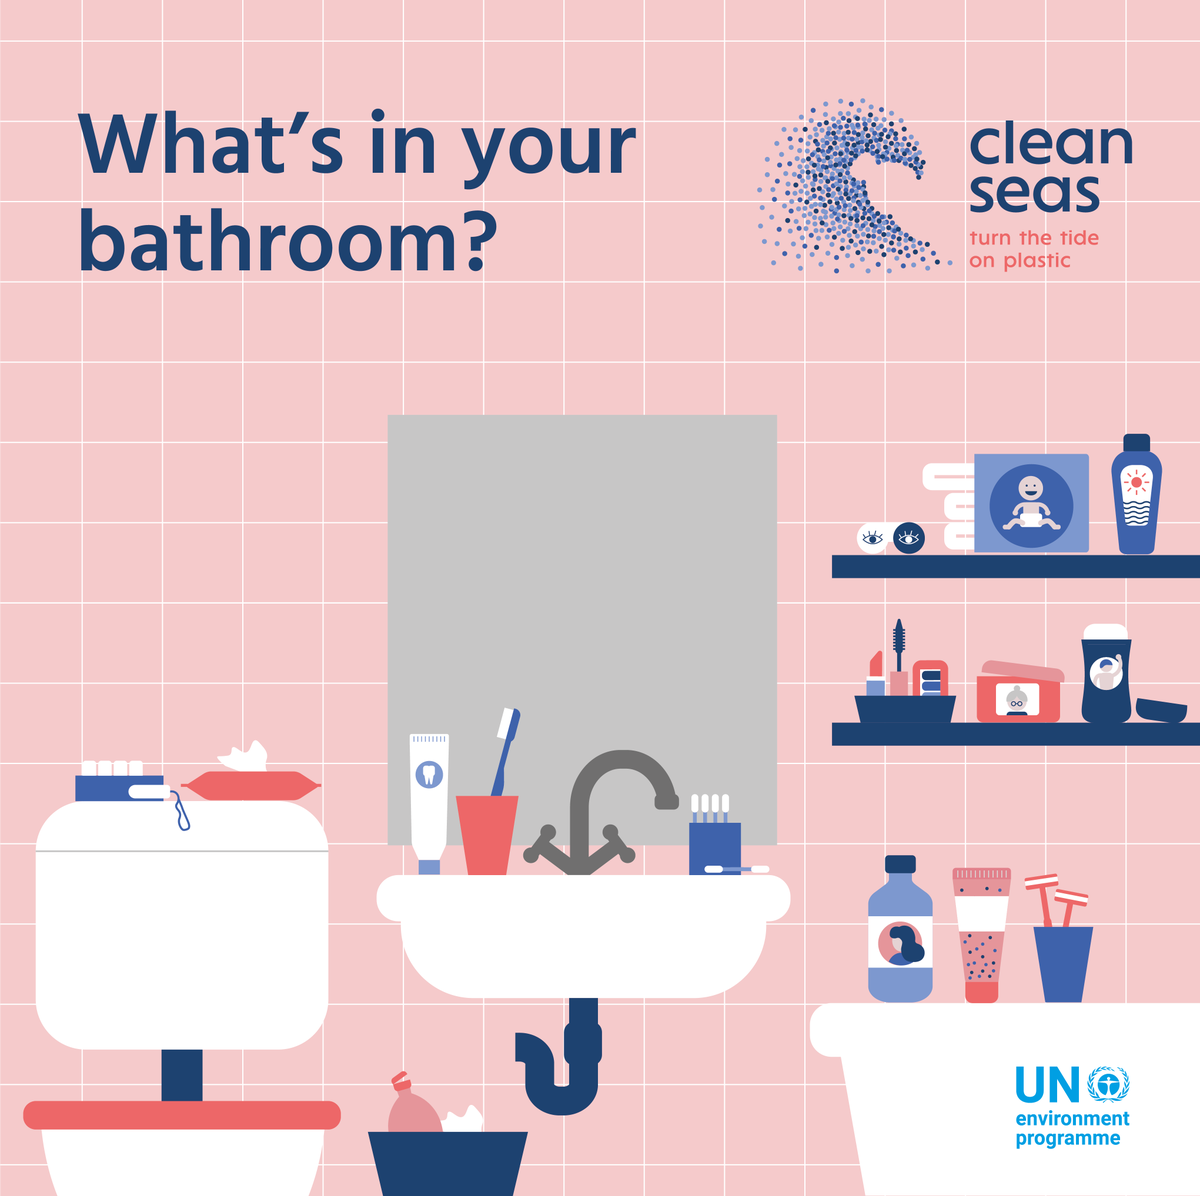 Did you know by using products with plastic ingredients, you could be dangerously polluting our oceans with microplastics? By avoiding the use of these ingredients, you will be doing your part for #CleanSeas. Join the movement with @UNEP! bit.ly/2Kd50zk